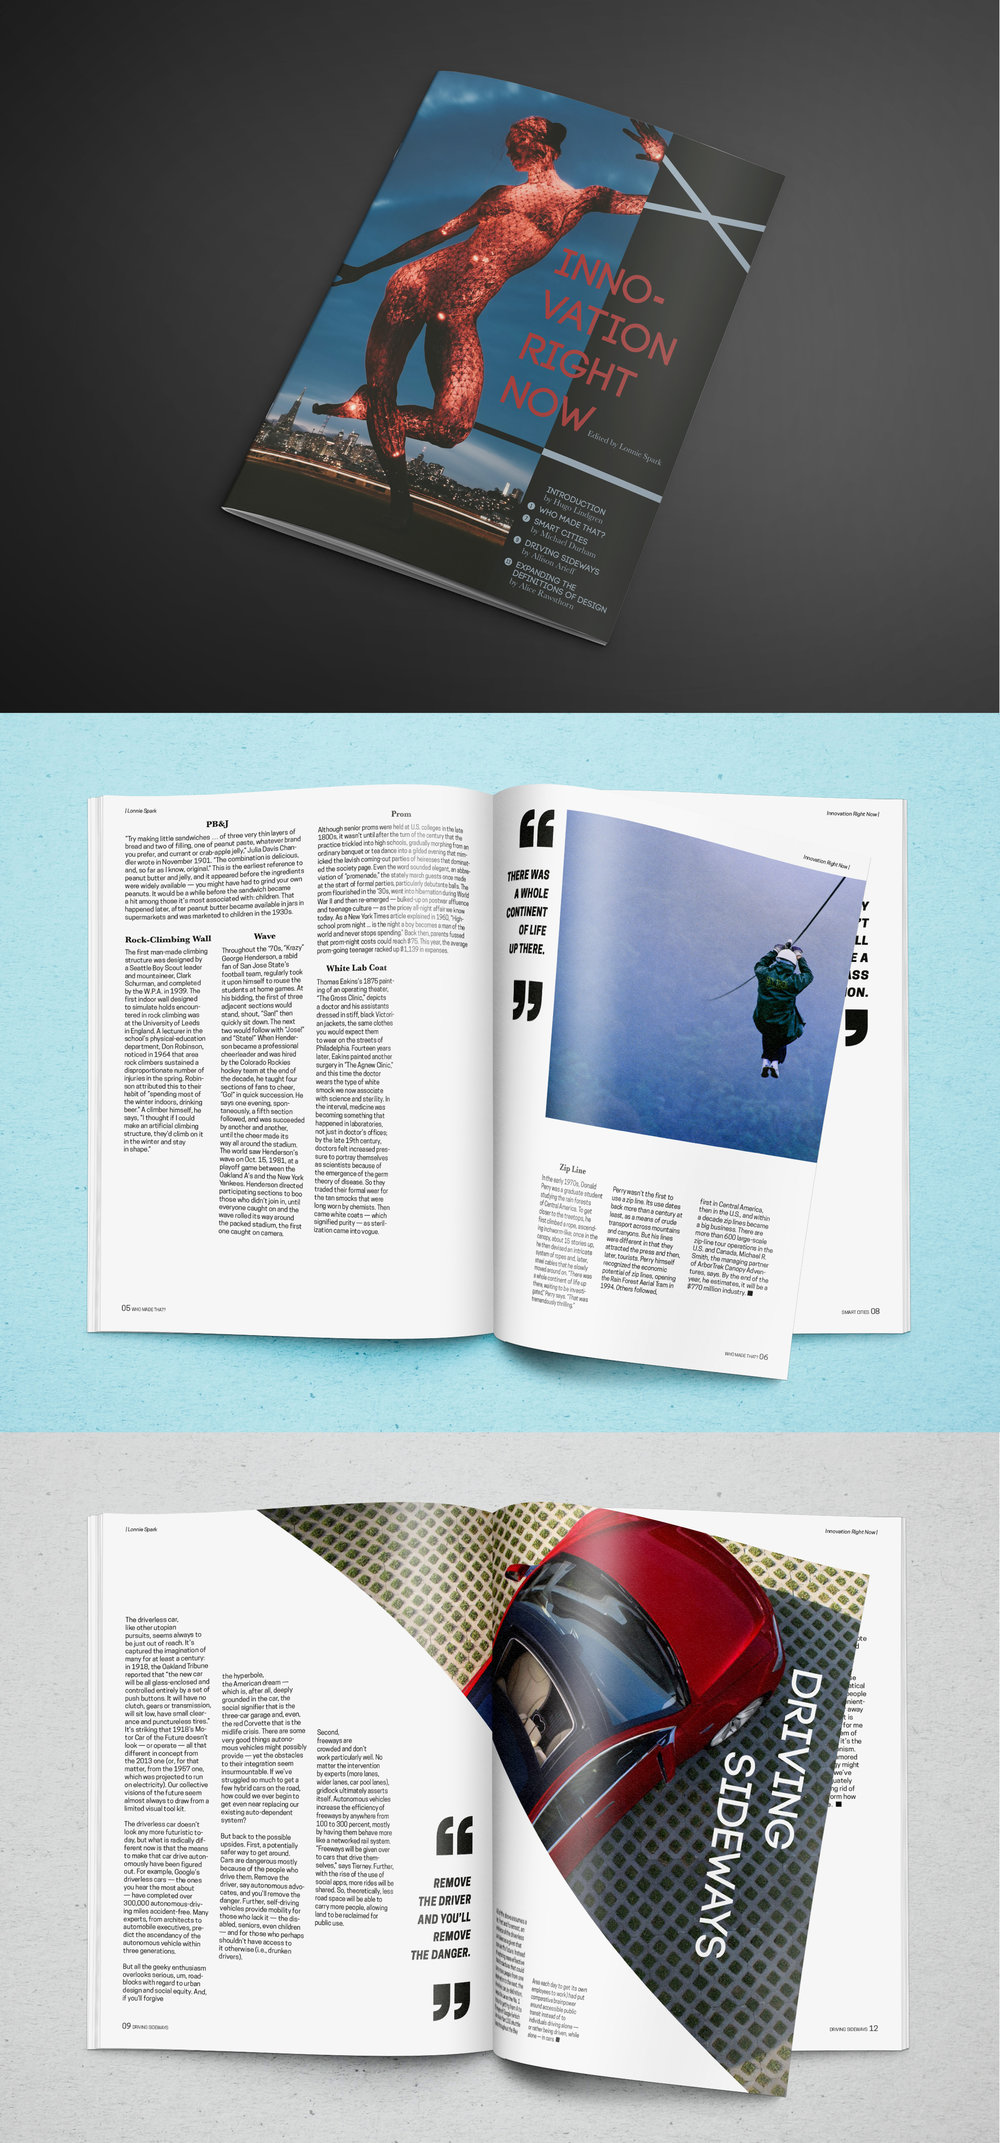 Innovation Right Now Publication - A challenge to create a publication design based on a series of small articles under the moniker INNOVATION RIGHT NOW, ranging from cars of the future to advancements in what we do for leisure and travel.